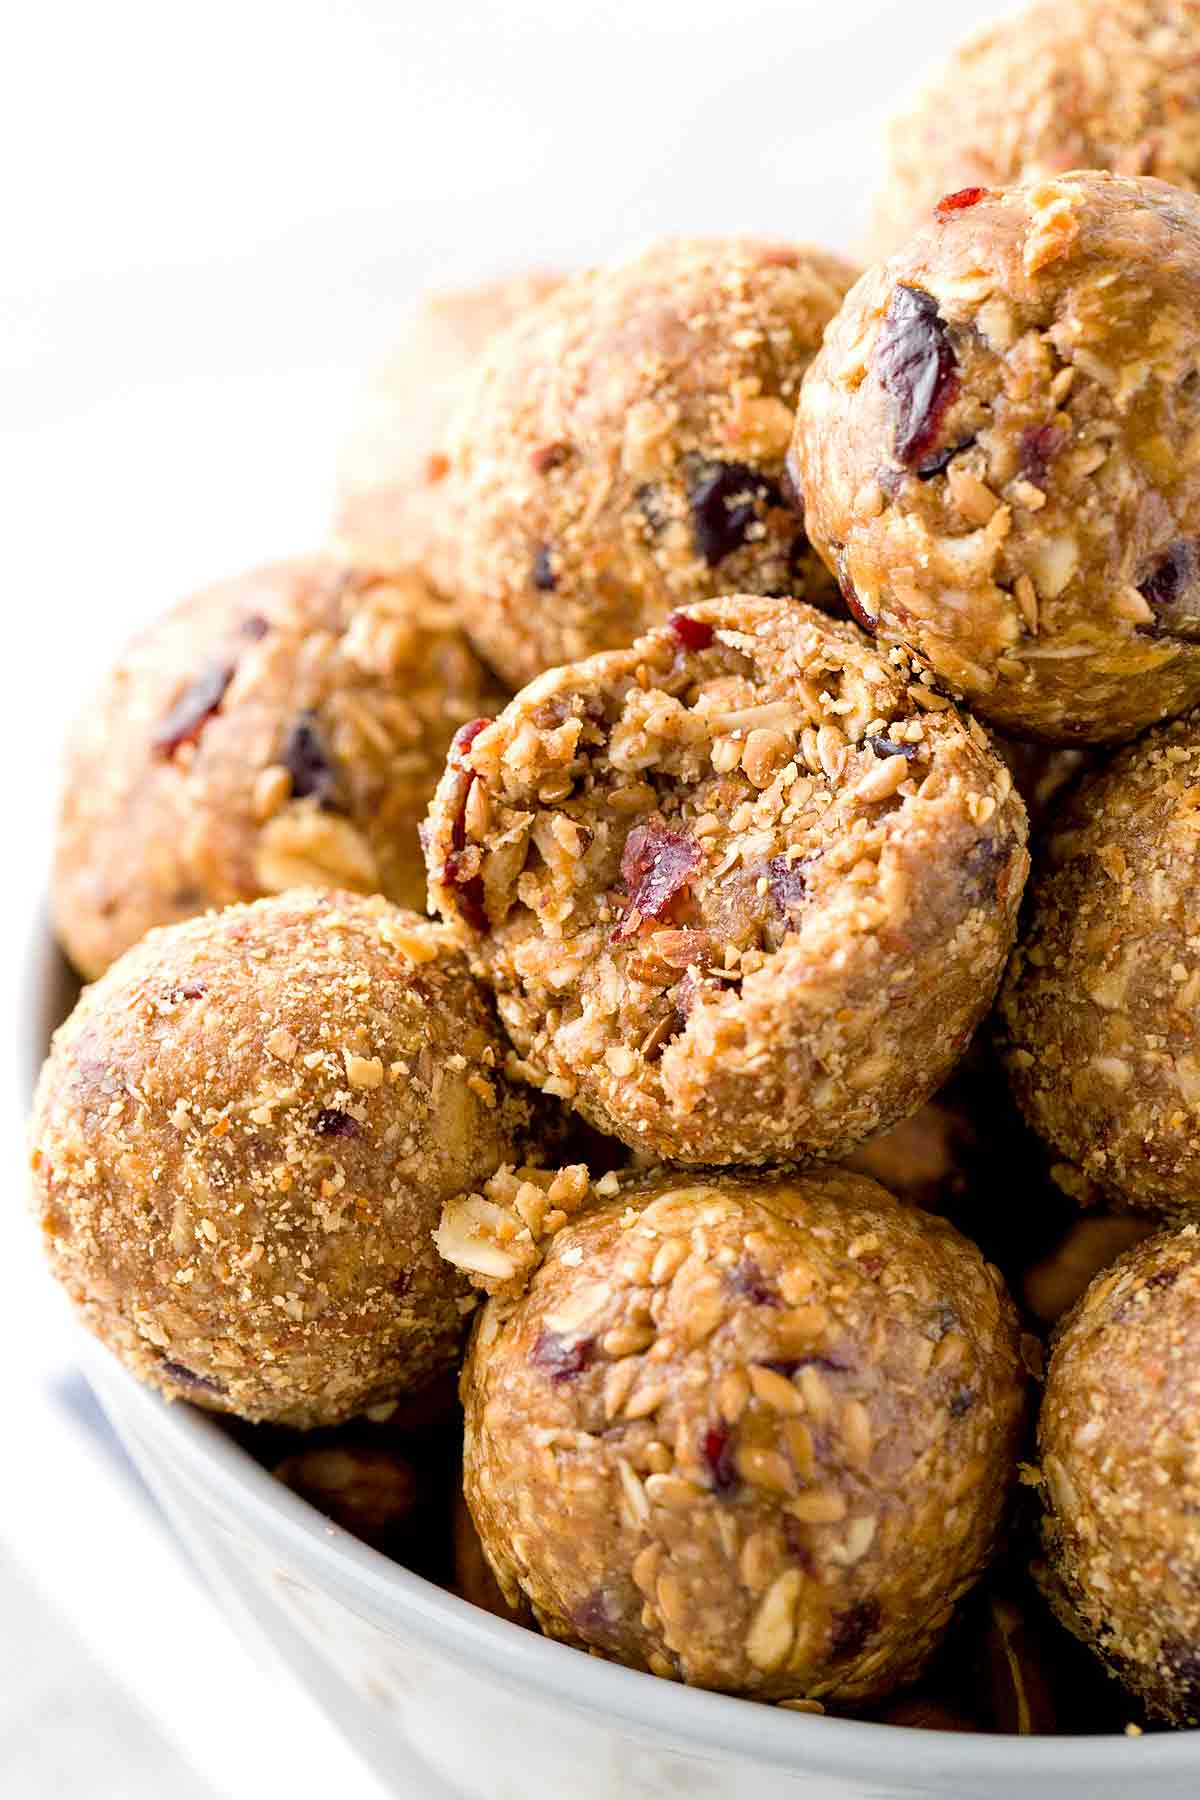 No bake energy bites packed with protein and nutritious ingredients for your on the go lifestyle.